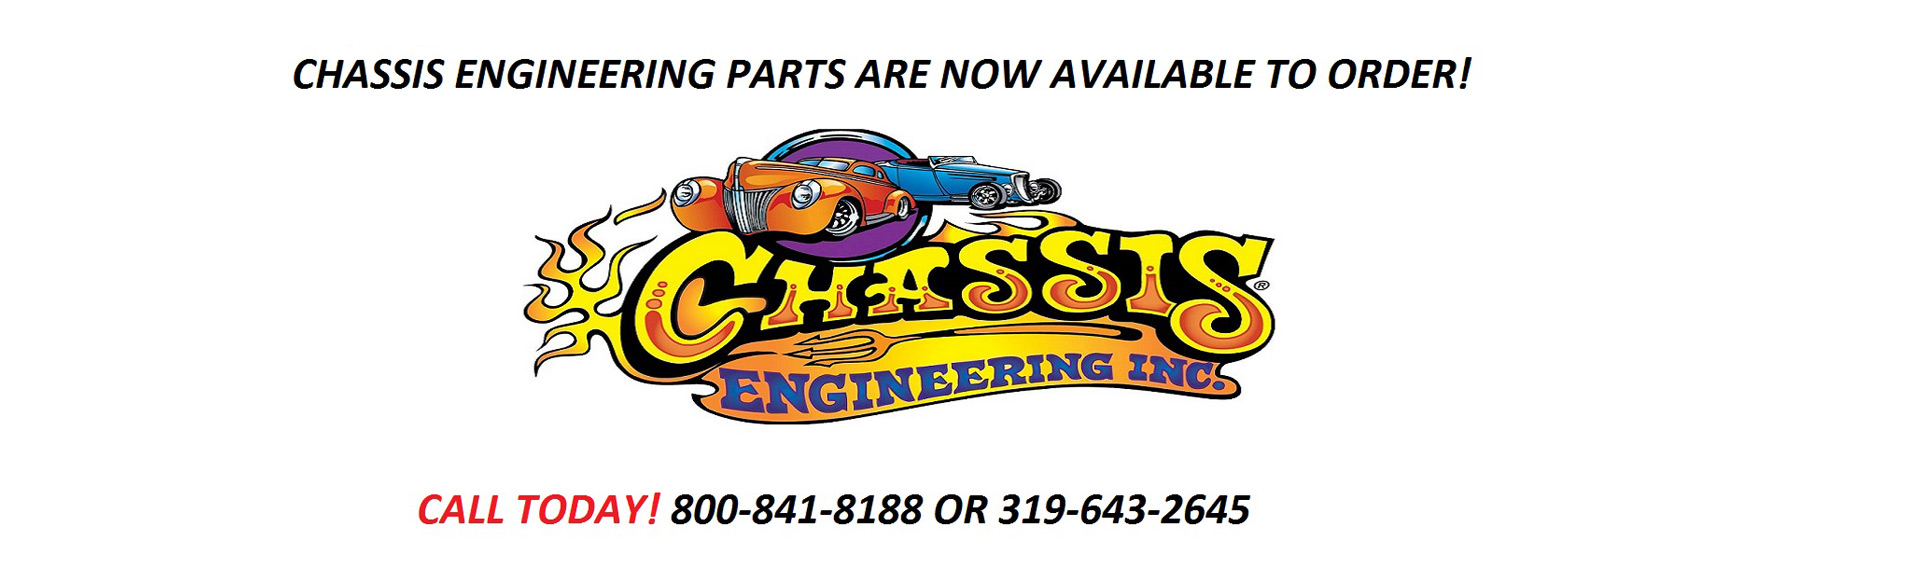 chassis engineering coupon code